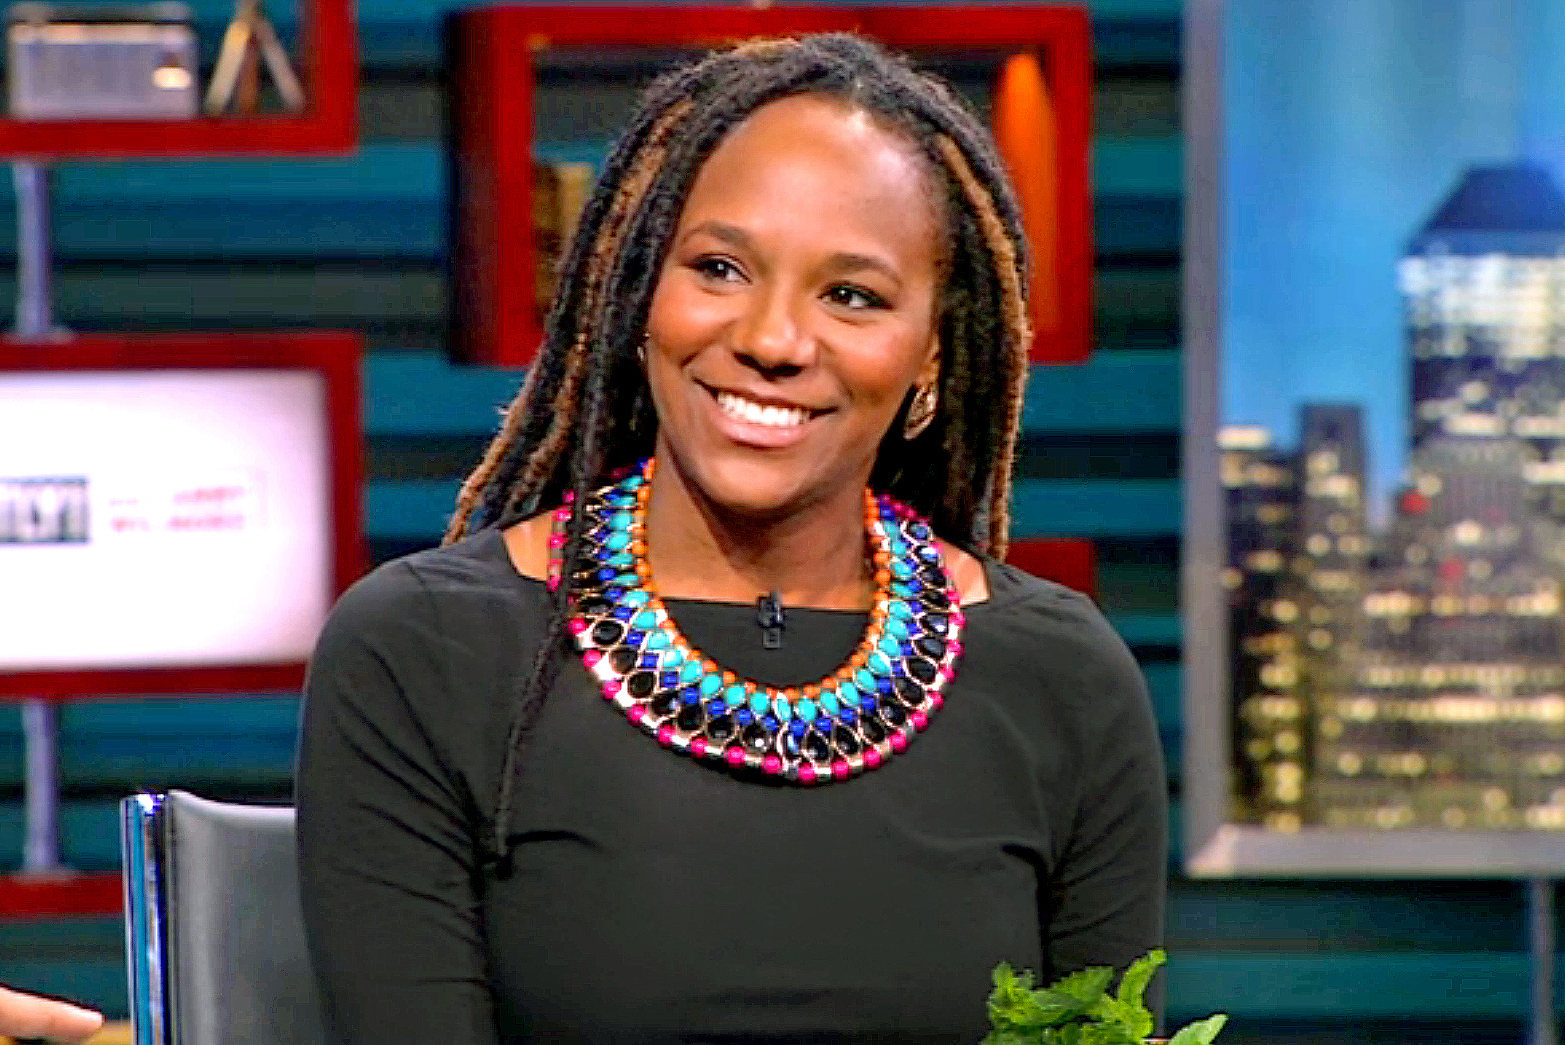 Conference Keynote speaker Bree Newsome